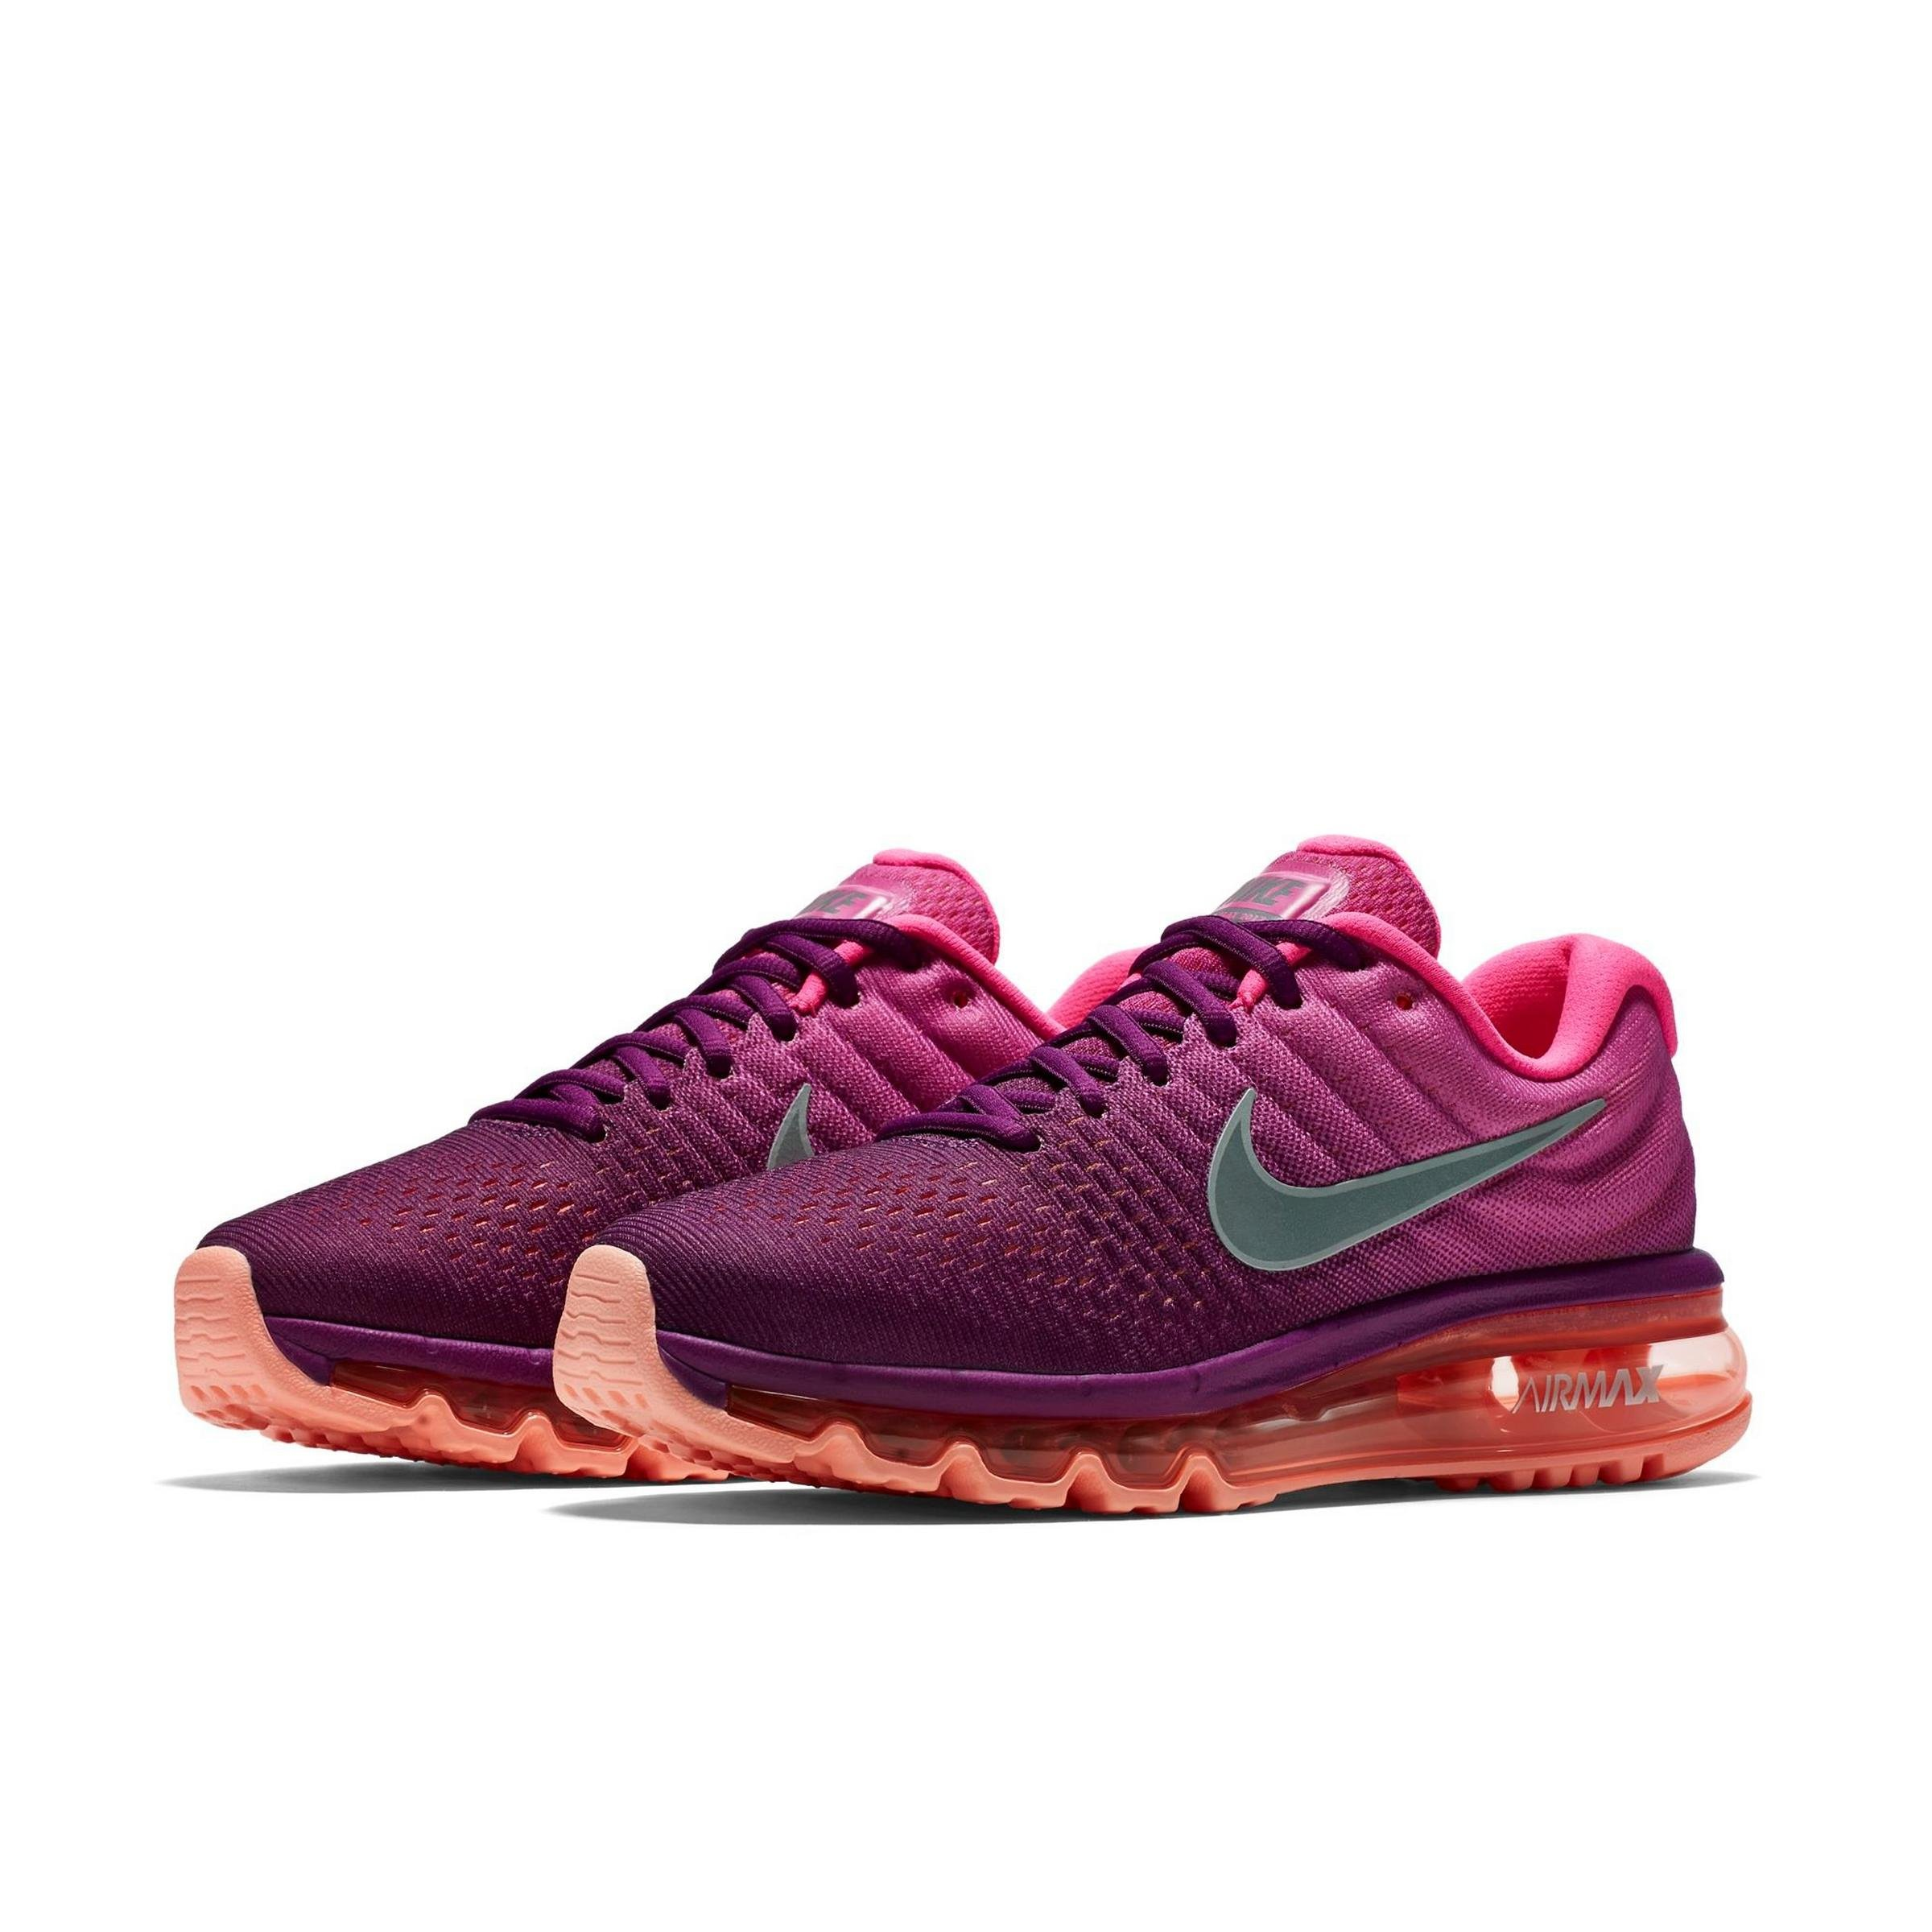 huge selection of 13844 25bb4 Galleon - Nike Womens Air Max 2017 Running Shoes Bright Grape White Pink  Fire 849560-502 Size 8